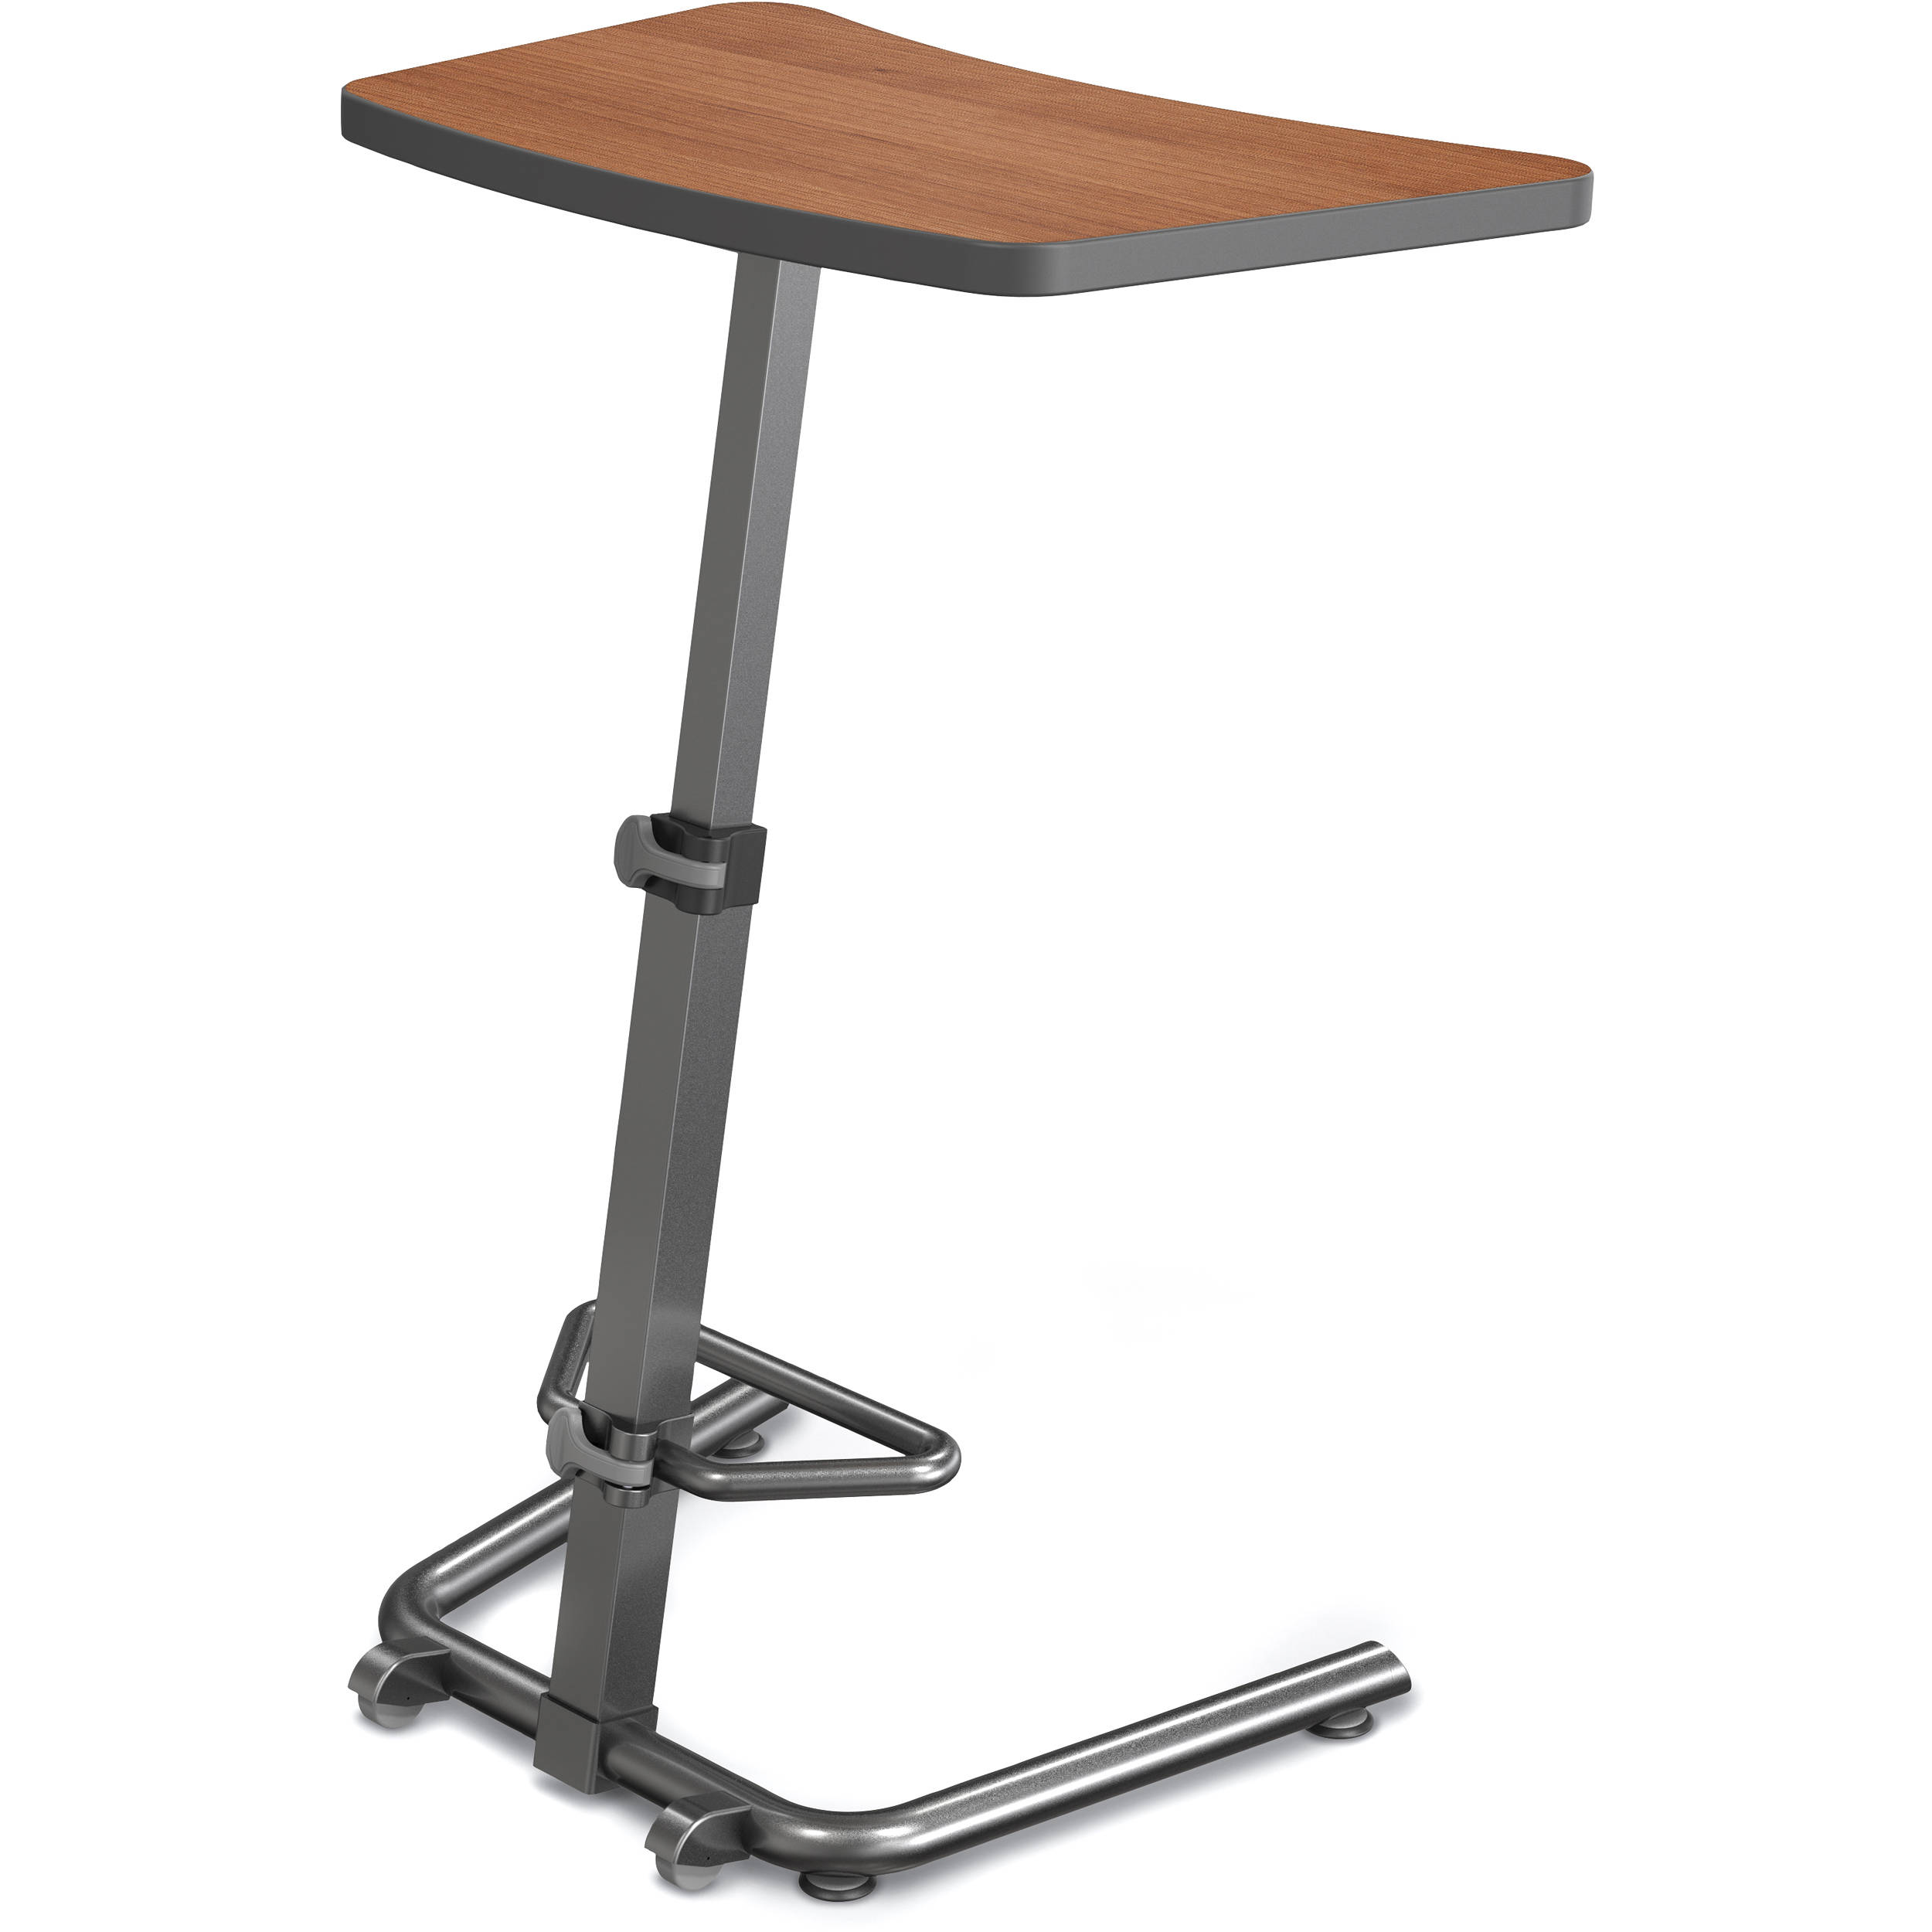 desk for safco muv height adjustable stand lr up image products from